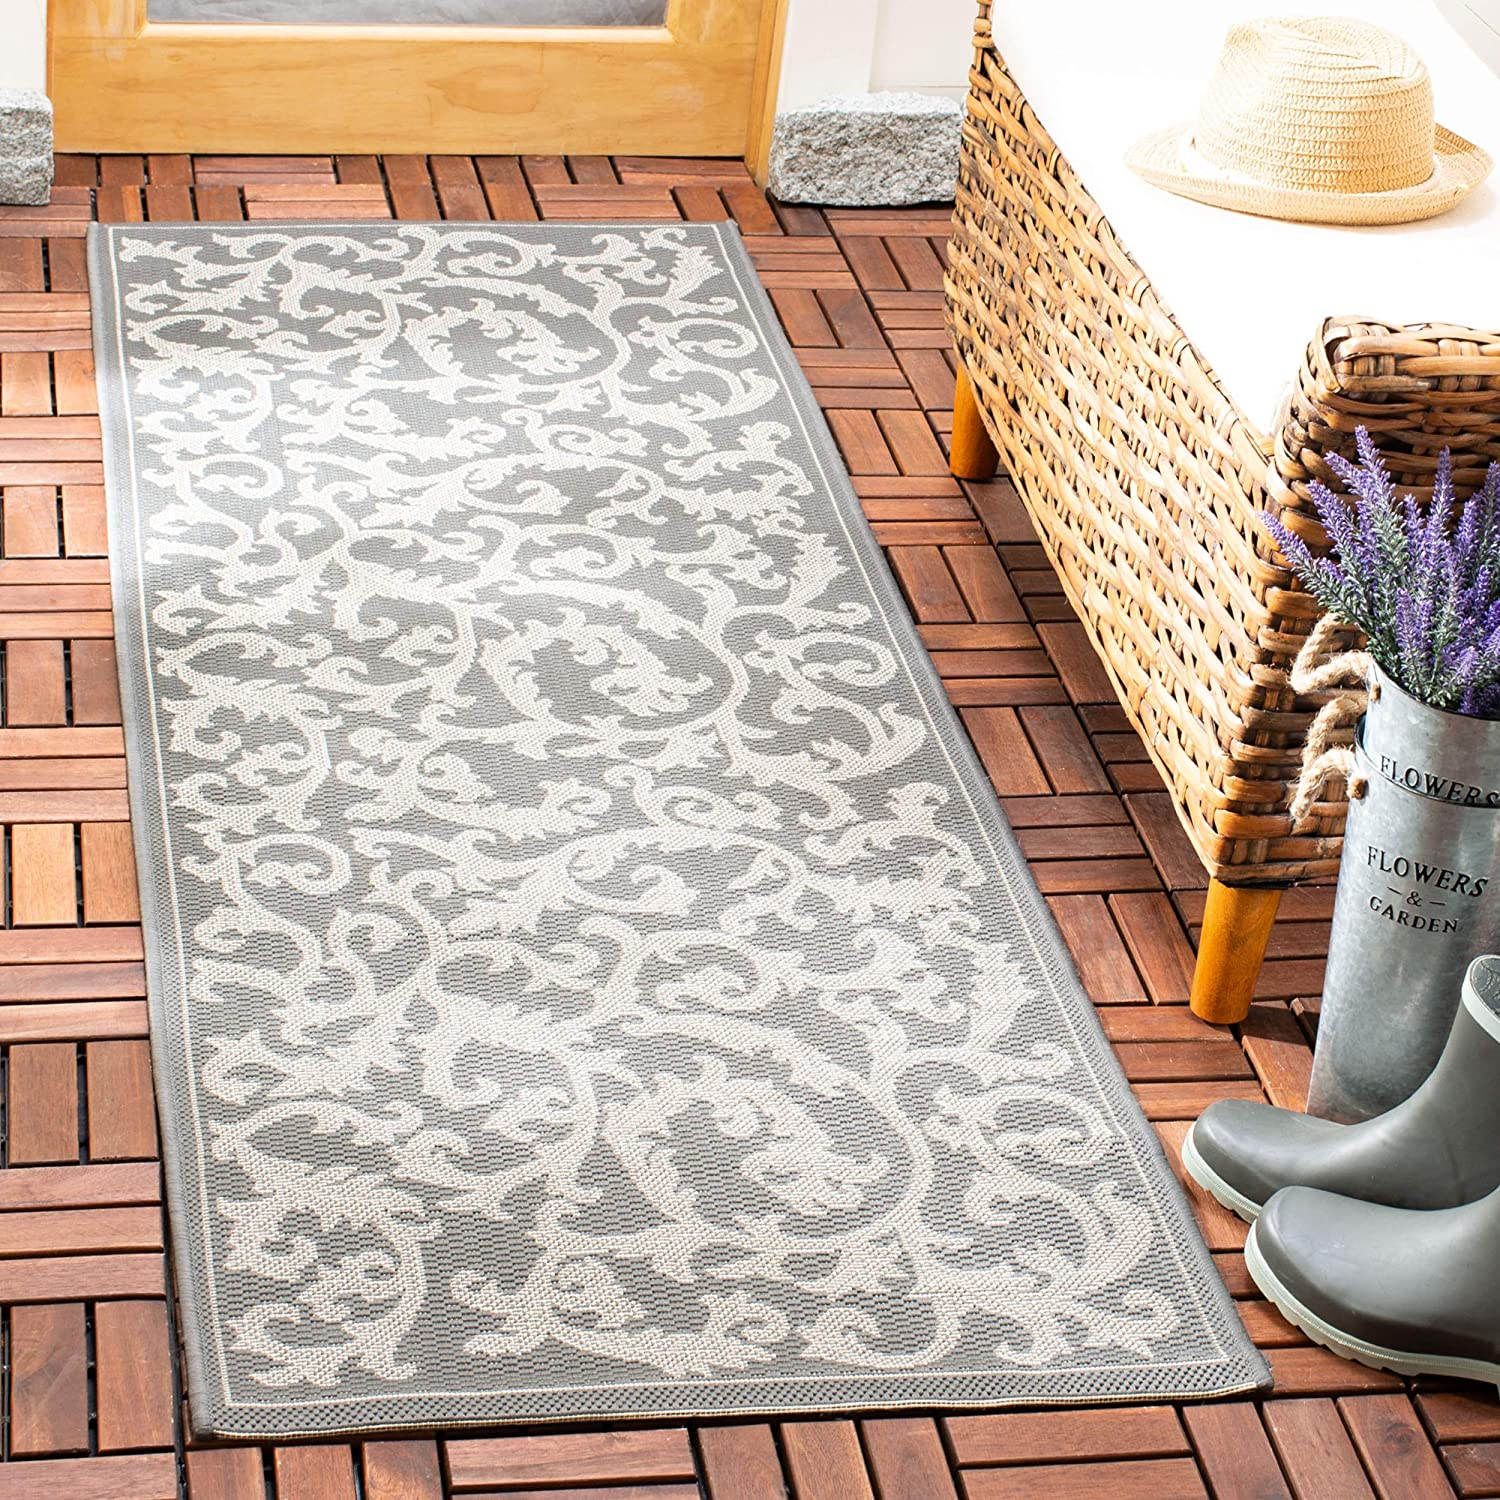 (0.6m x 0.9m, Anthracite Light Grey) - Safavieh Courtyard Collection CY6533-87 Anthracite and Light Grey Indoor Outdoor Area Rug (0.6m x 0.9m)